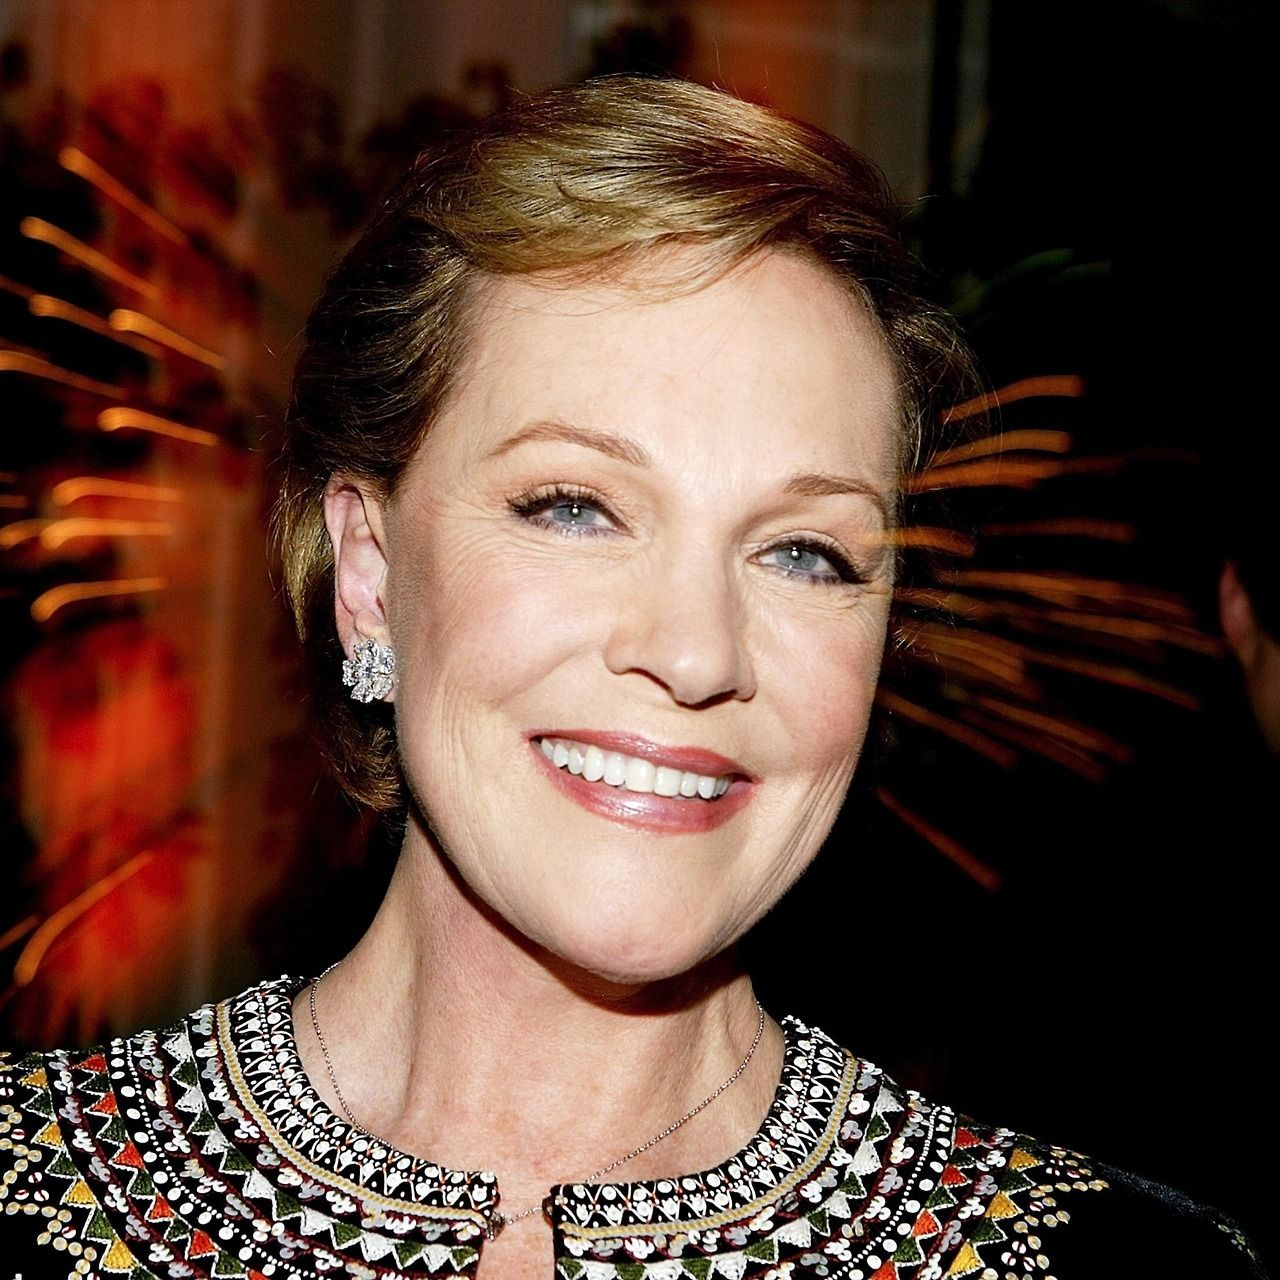 Julie Andrews (born 1935) nude (23 photos), Topless, Hot, Boobs, bra 2015